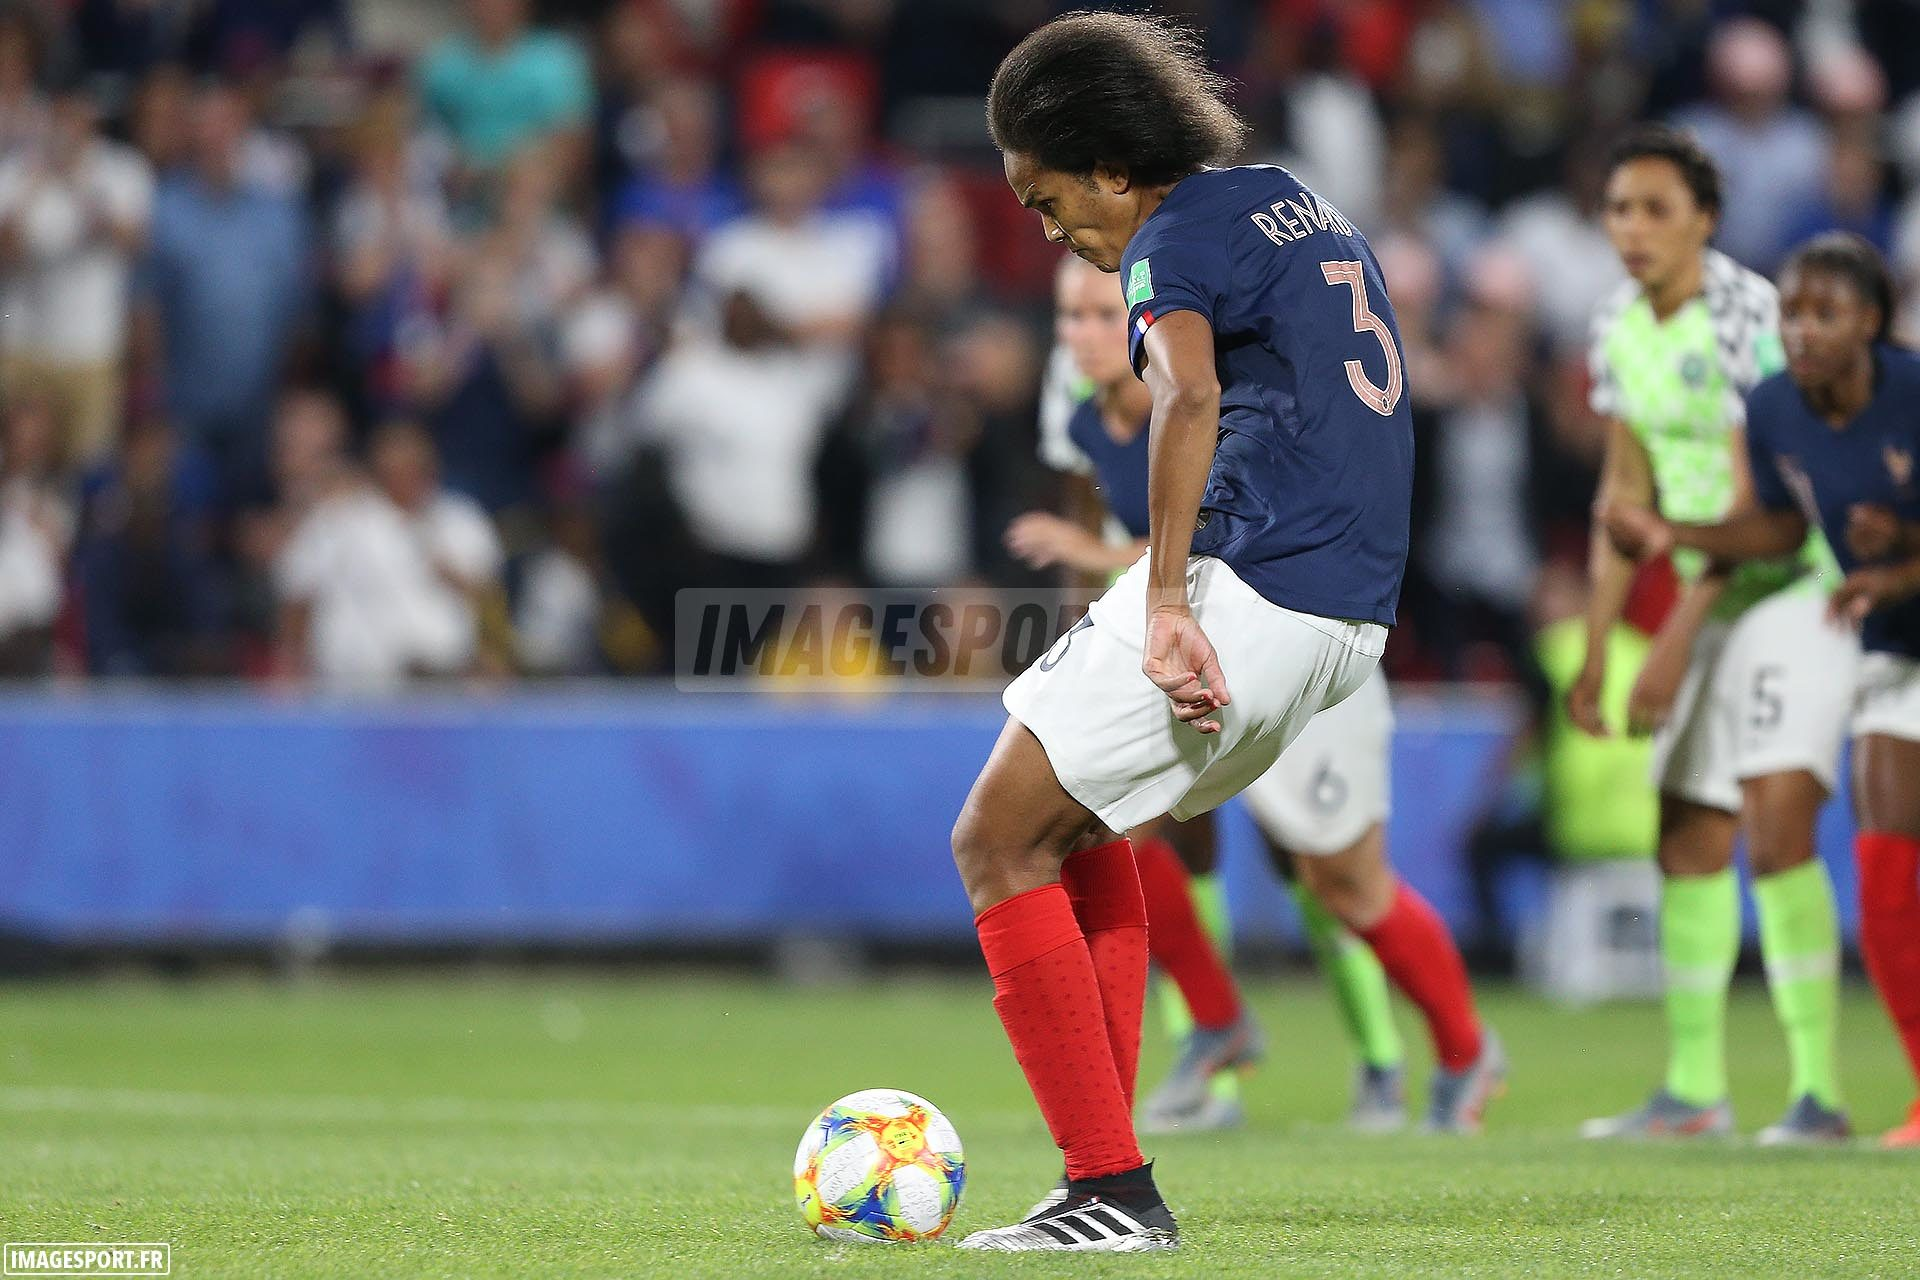 coupe-du-monde-19-nigeria-france_24